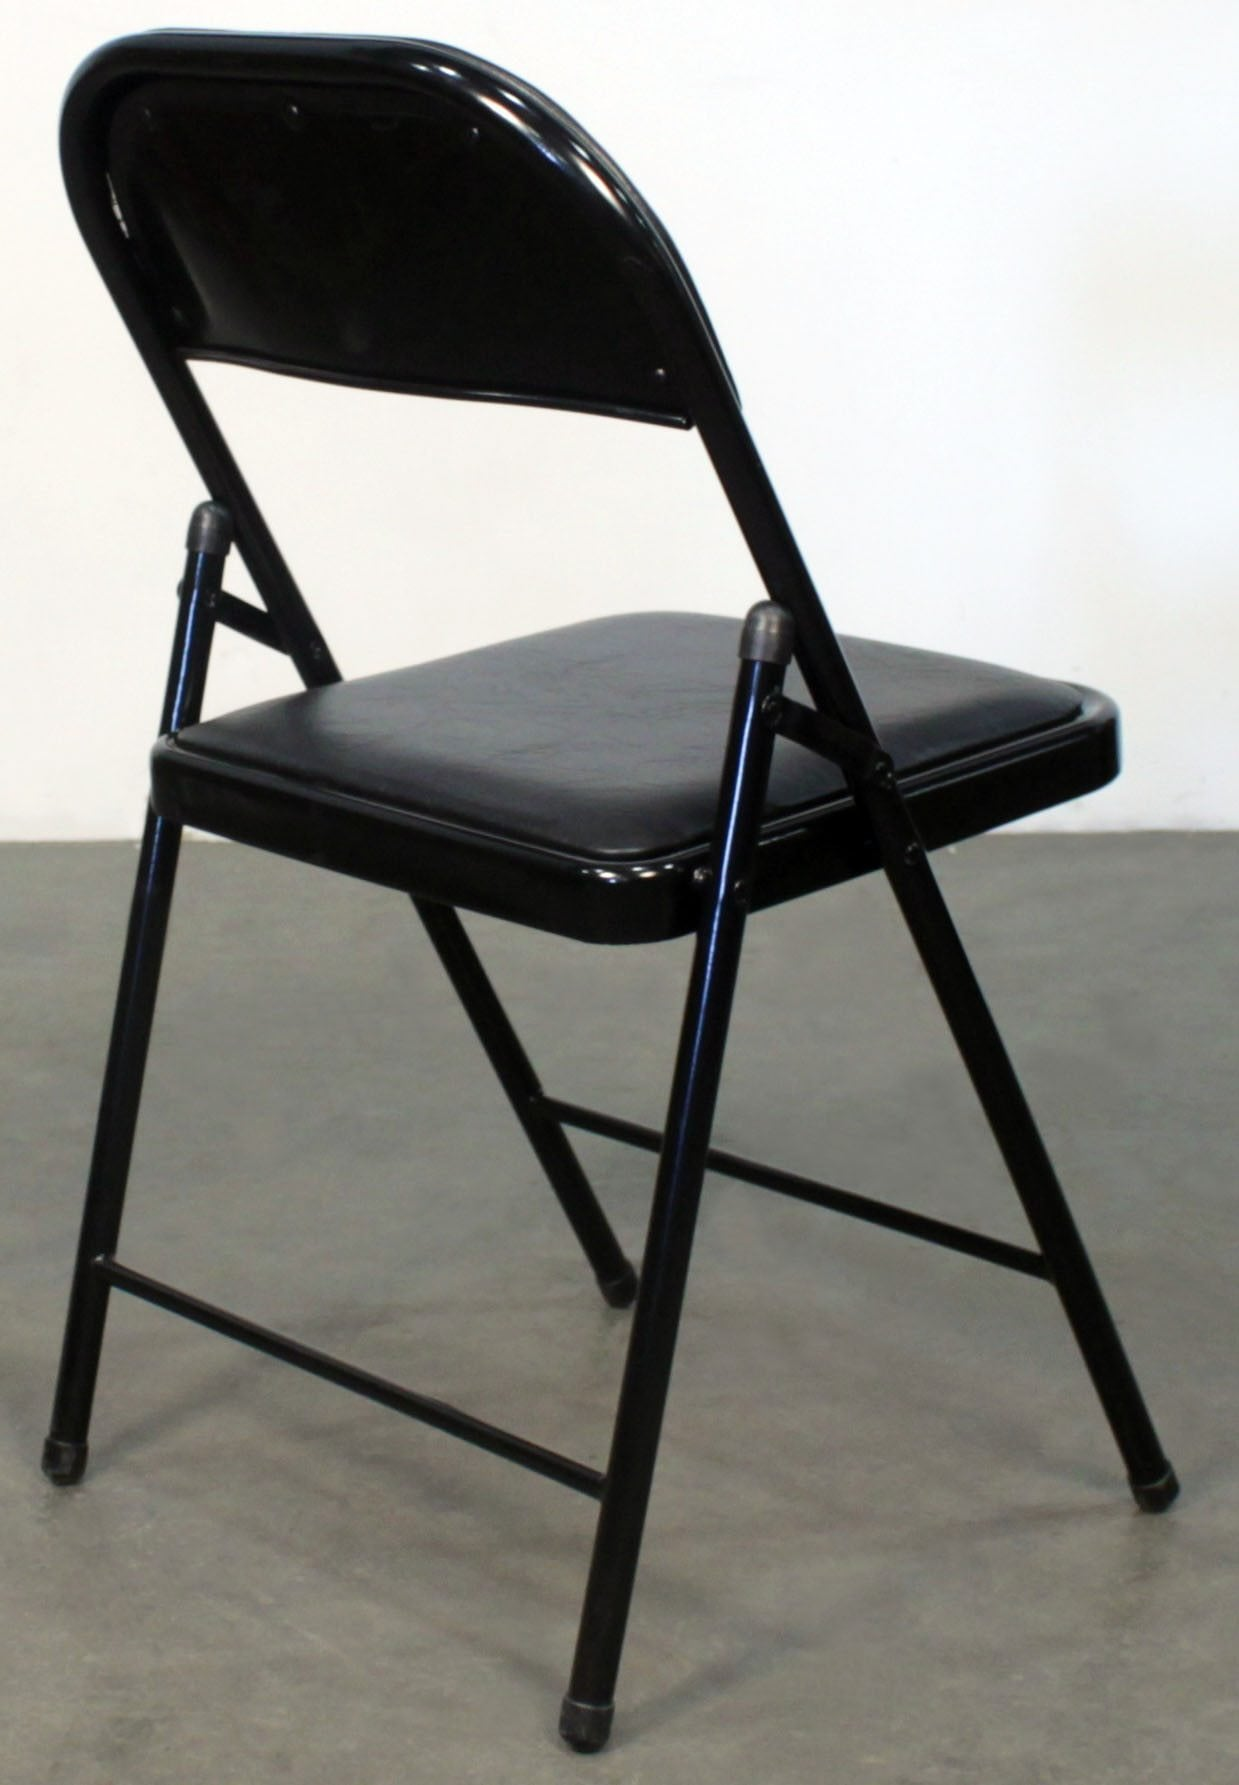 cushioned folding chairs chair stand test reliability gosit new black national office